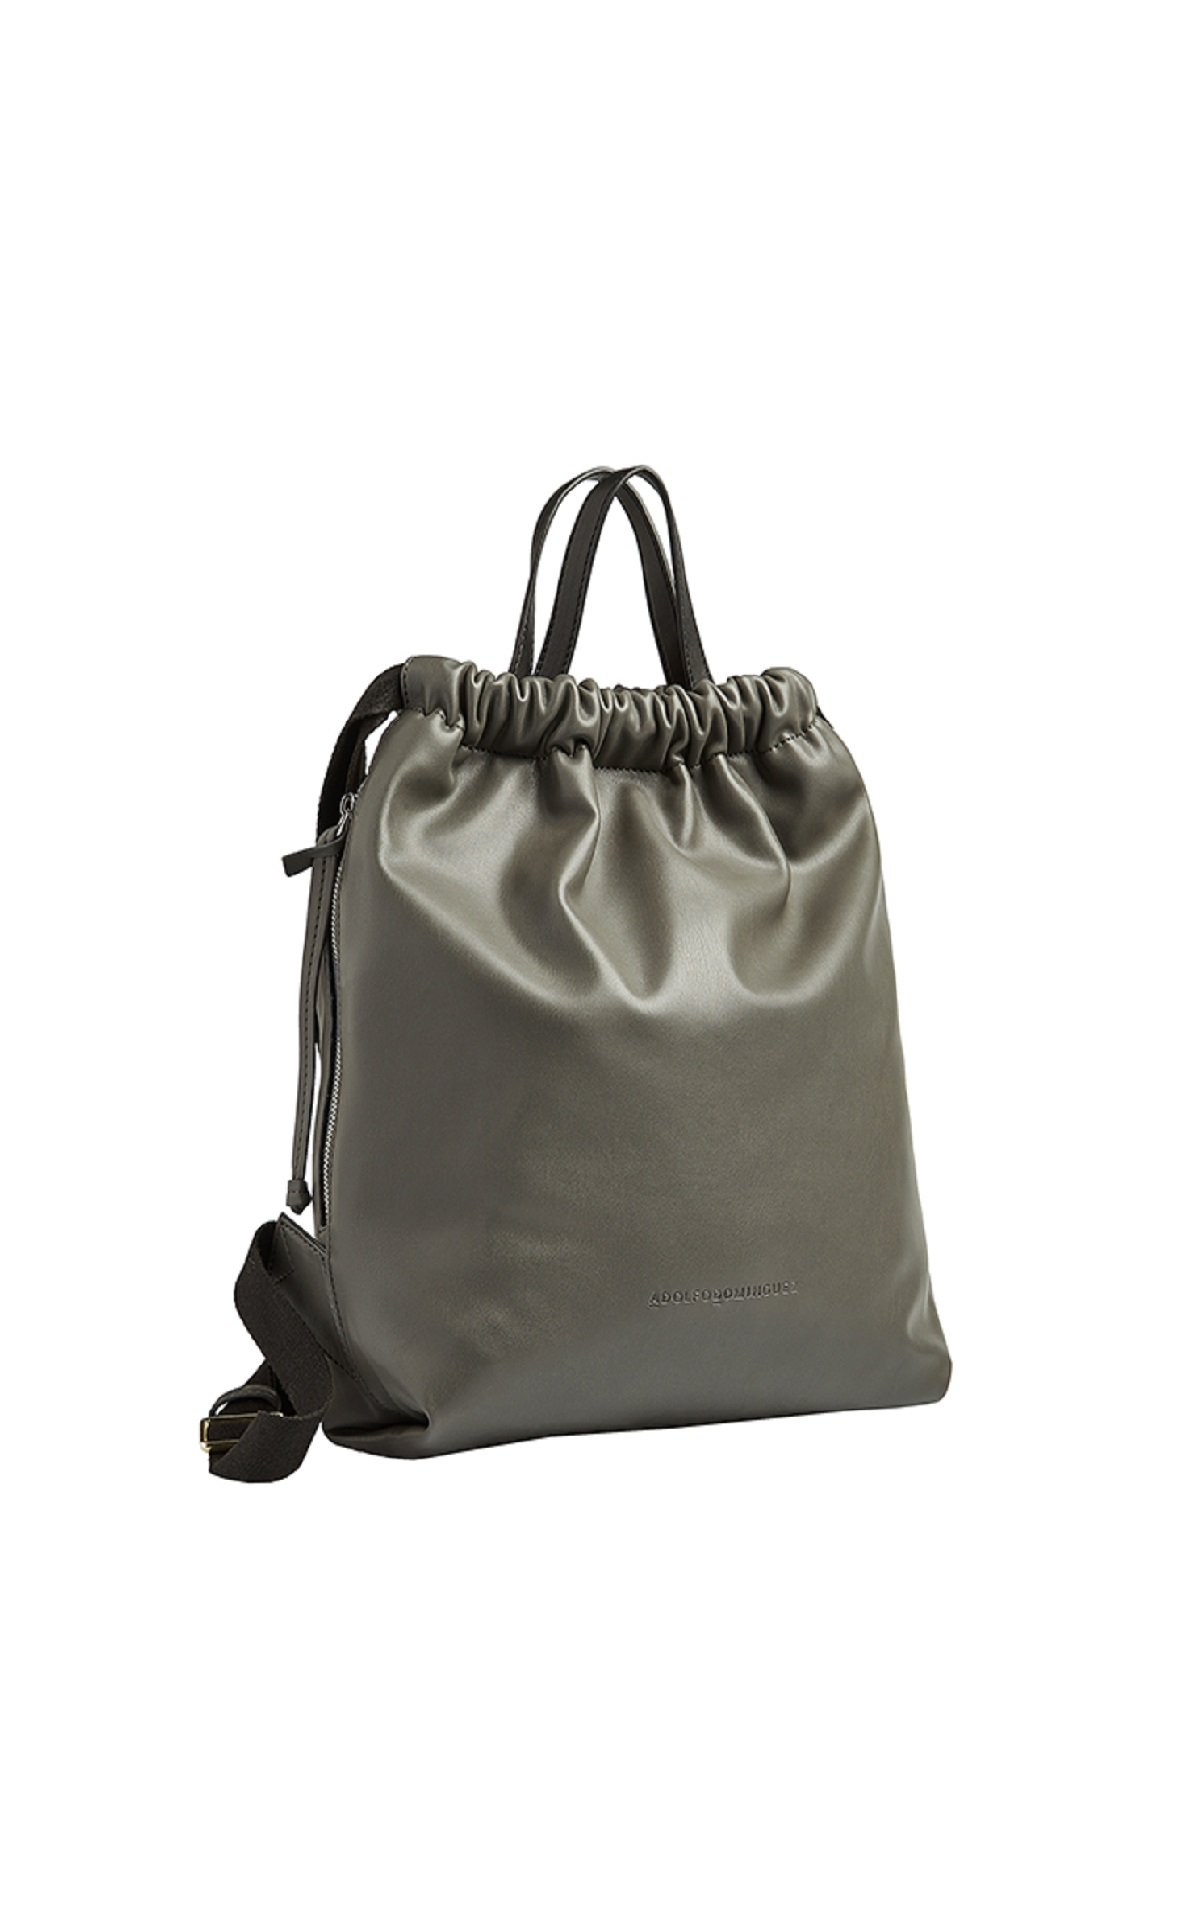 Khaki leather bag Adolfo Dominguez